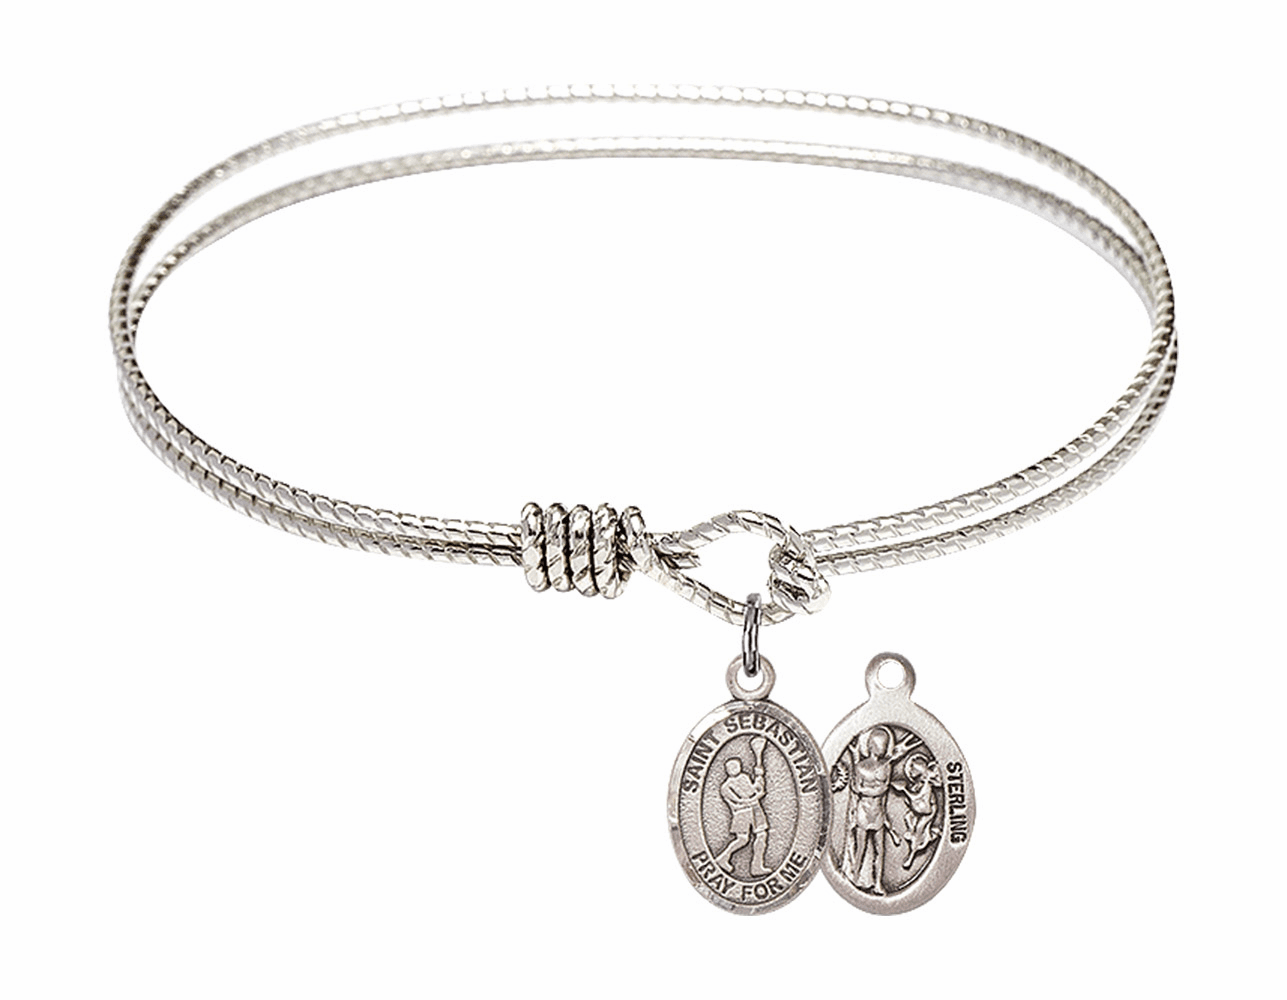 Twist Round Eye Hook St Sebastian Lacrosse Bangle Charm Bracelet by Bliss